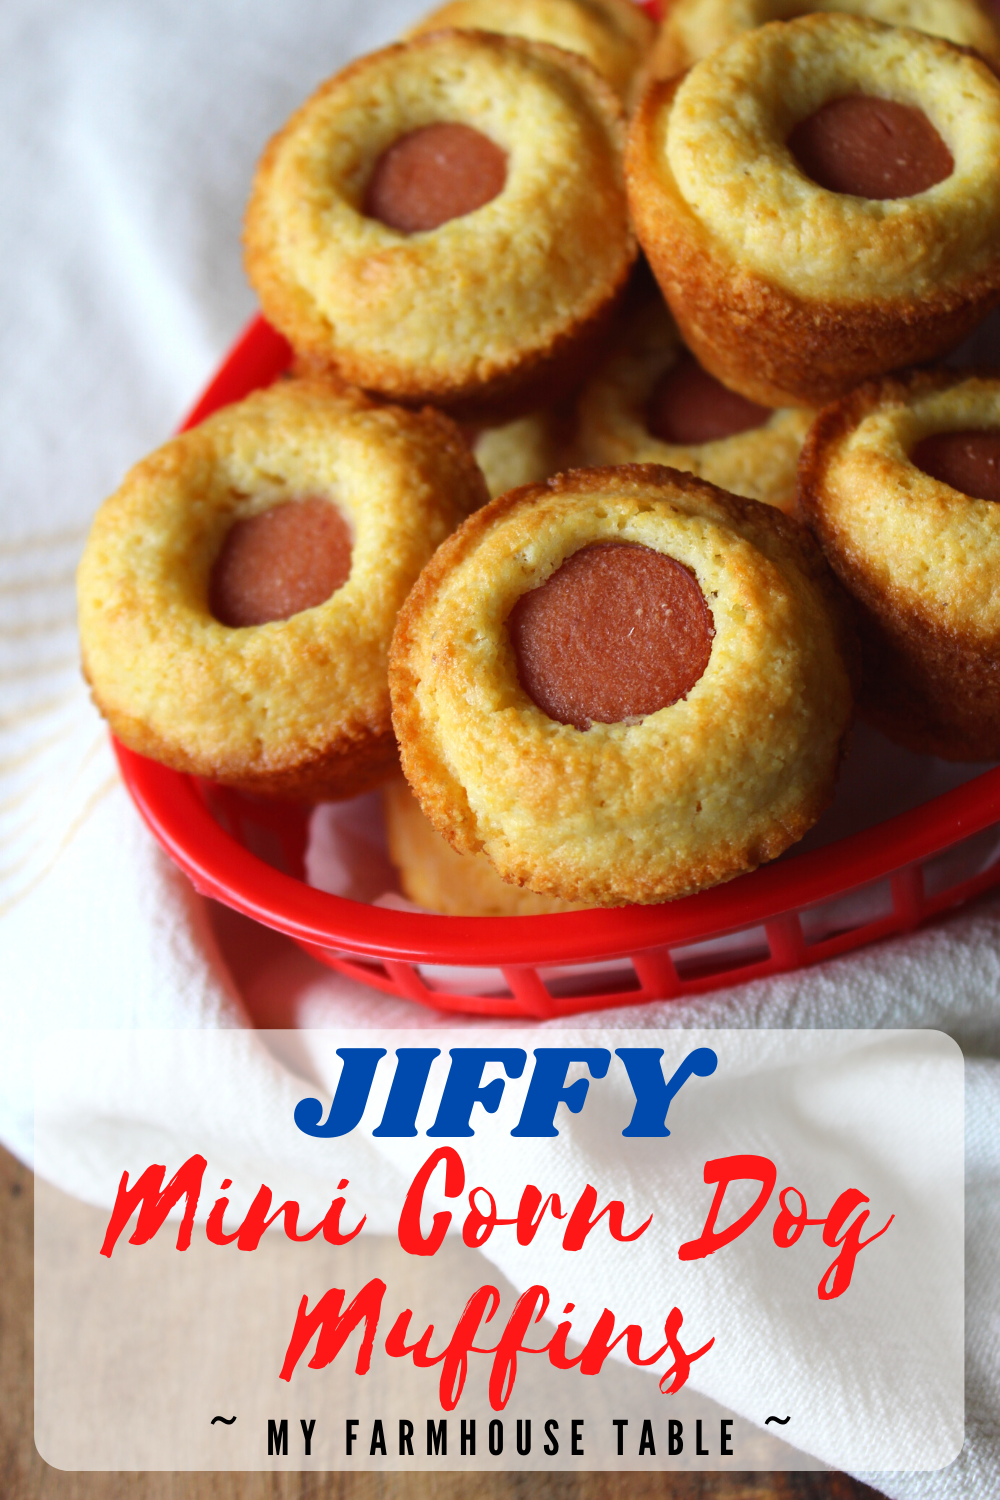 JIFFY Mini Corn Dog Muffins Easy From Scratch Recipe using JIFFY Cornbread Mix Great Snack or Meal for Kids Recipe My Farmhouse Table